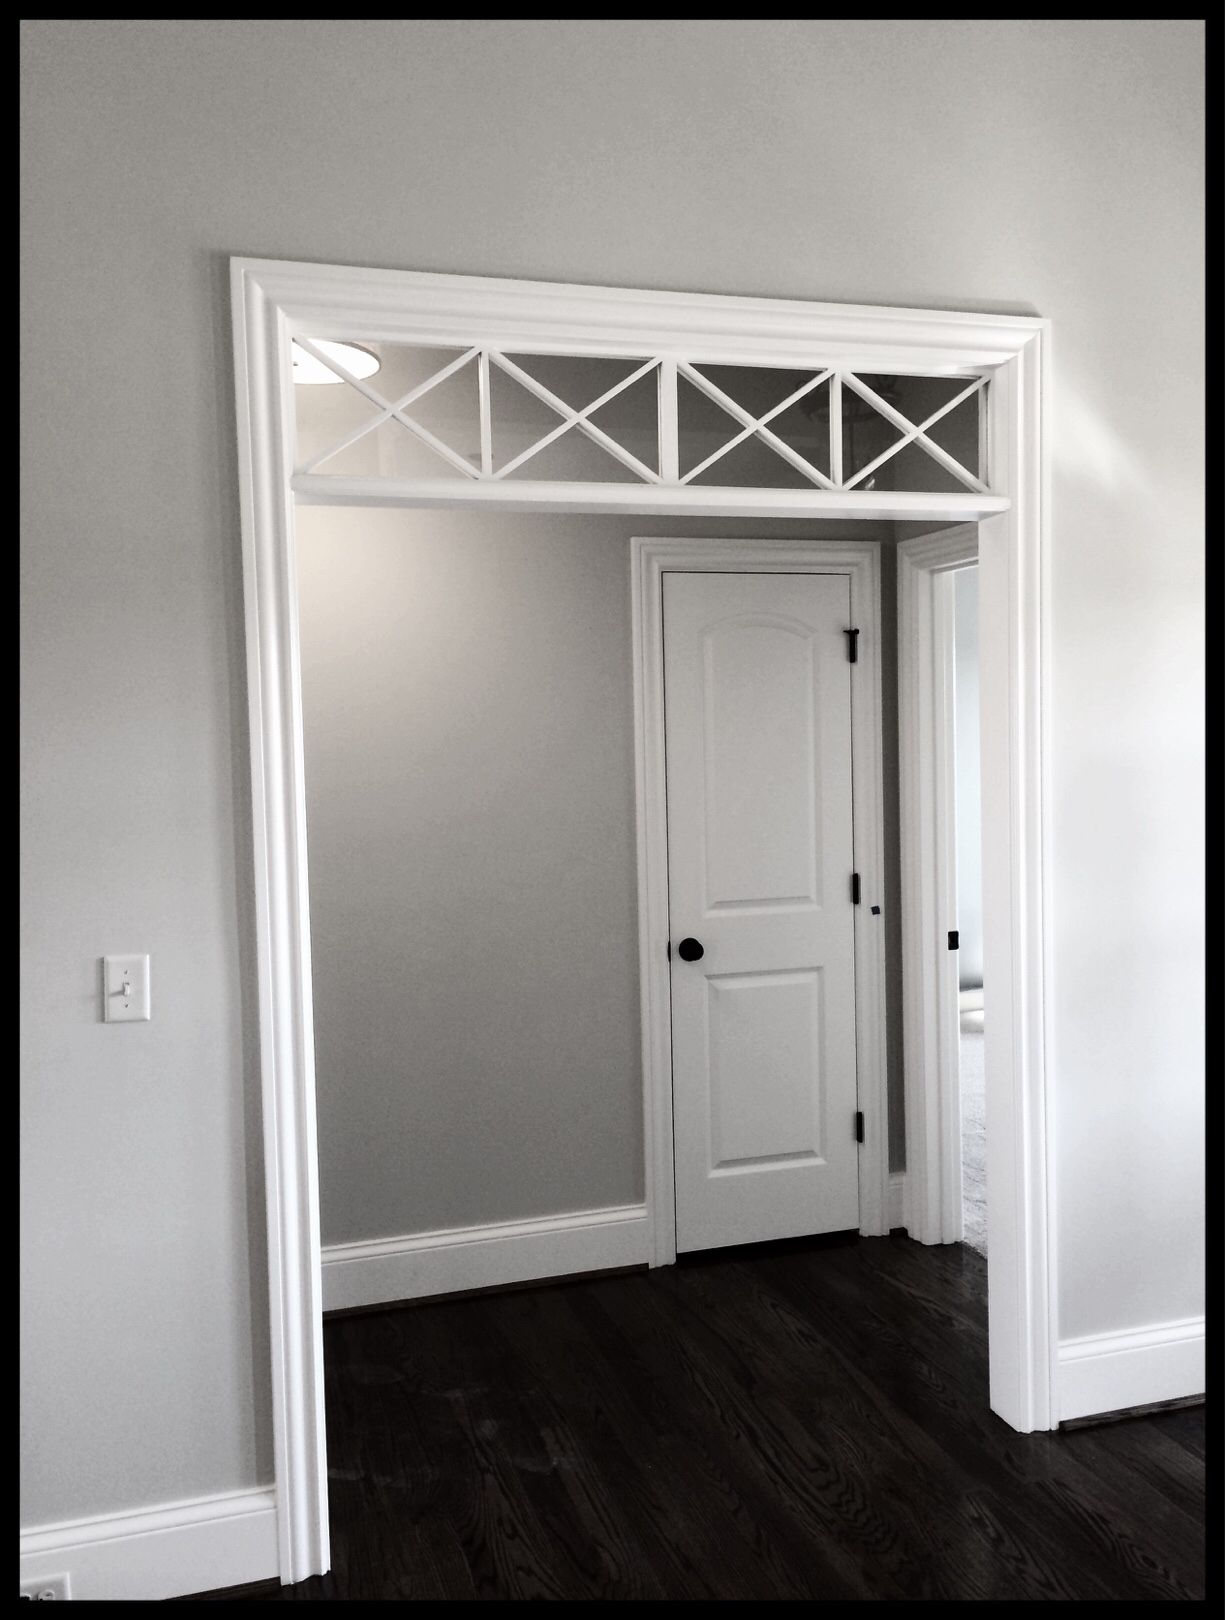 Timeless Interior transom window by Meridian Construction and David Weis. #LouisvilleHomeBuilder #HomeBuildersLouisville #LouisvilleNewHomes #LouisvilleBuilders #Custom #HomeBuilderLouisville #LouisvilleCustomHomeBuilder #CustomHomeBuilder #CustomBuiltHomesLouisville #MeridianConstruction #NortonCommons #Homearama